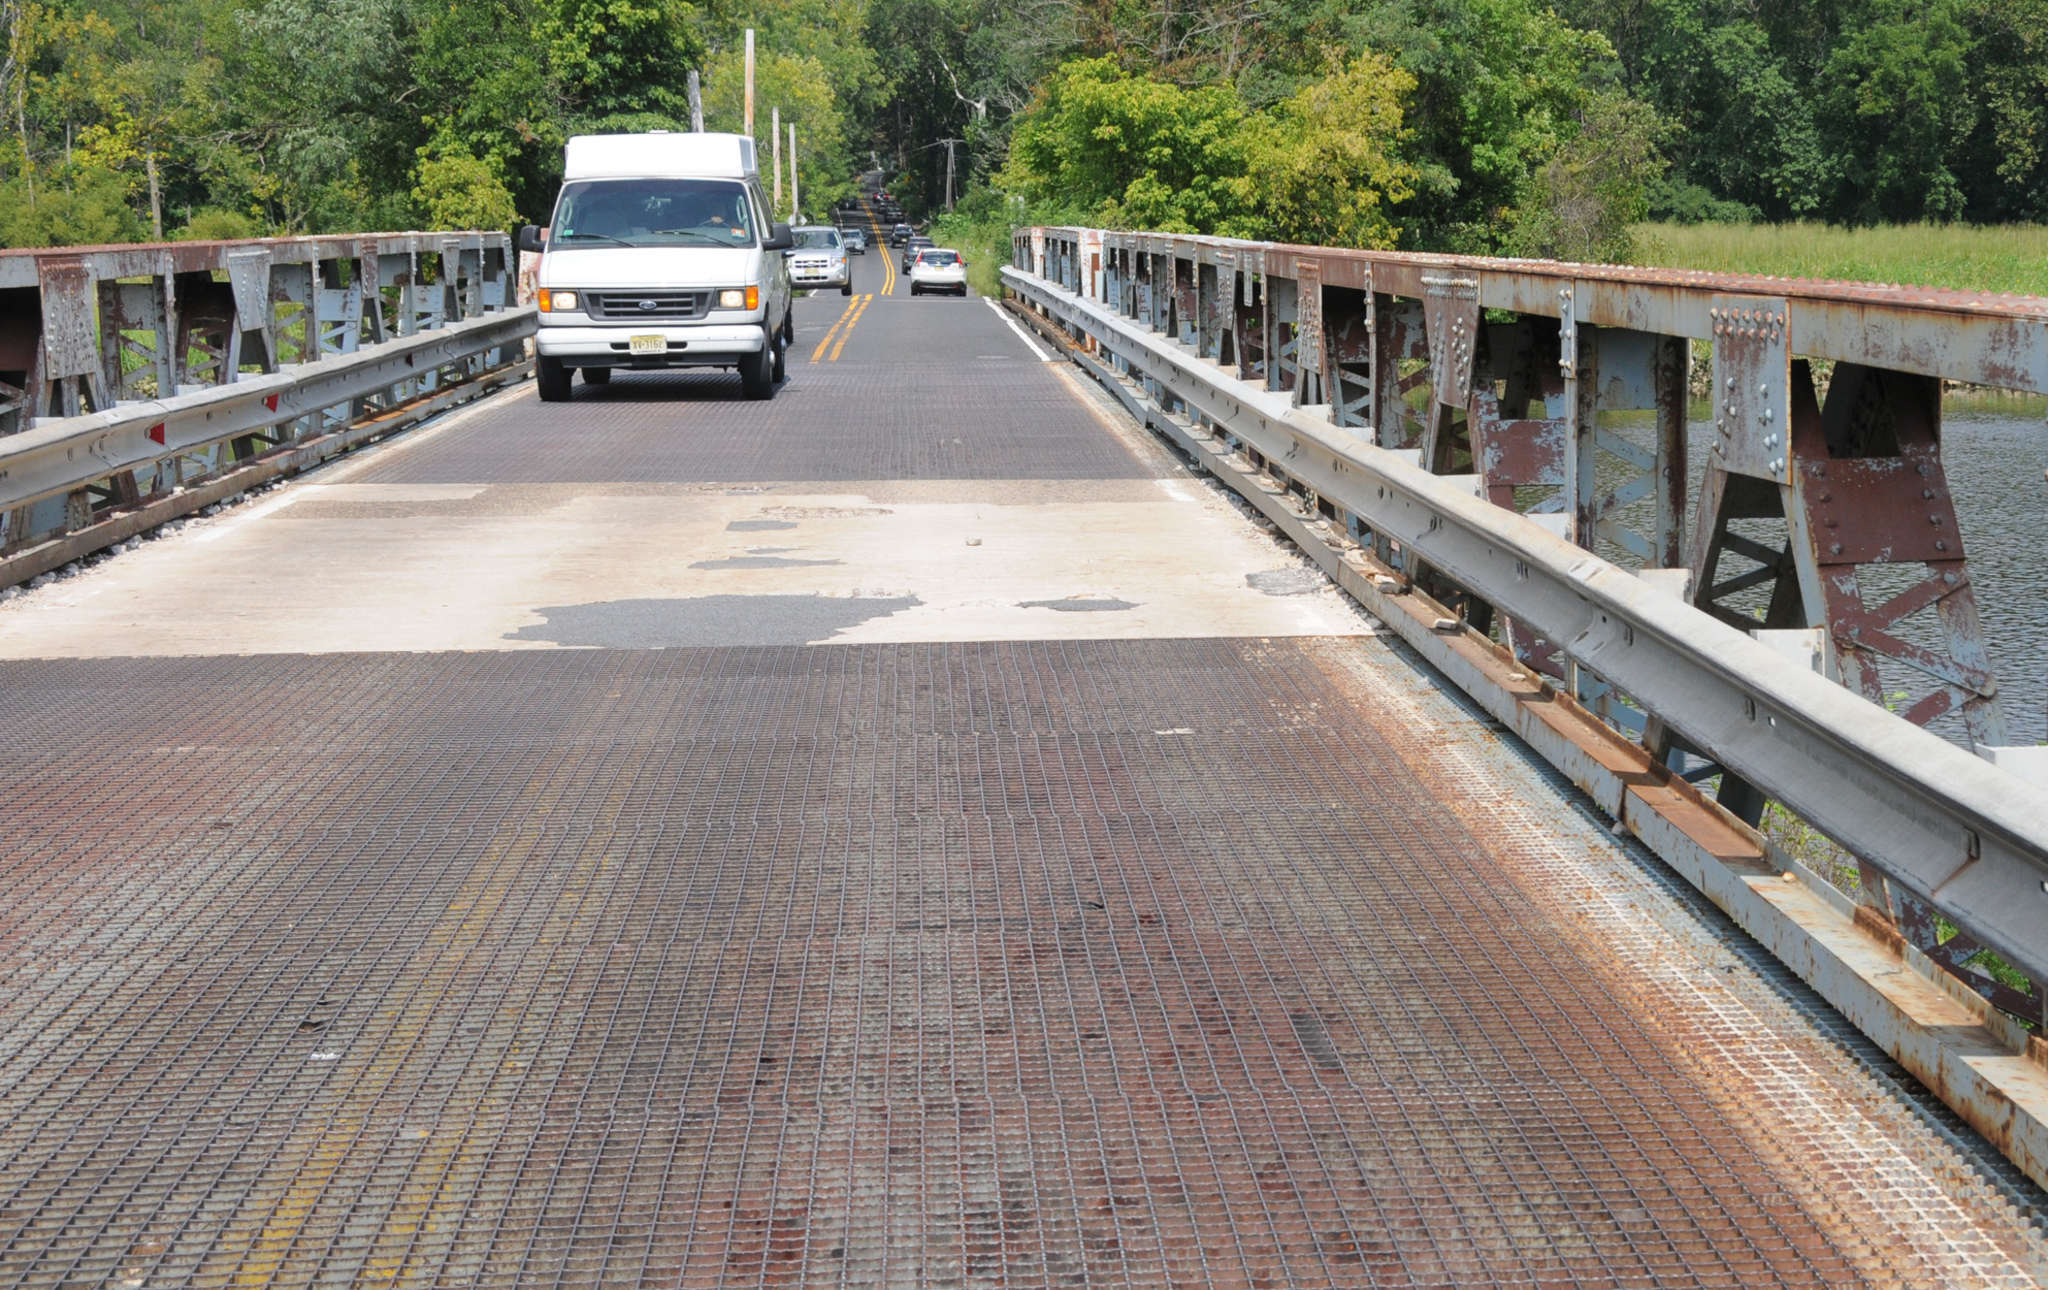 The Centerton Road Bridge over the Rancocas Creek in Mount Laurel will not be saved, despite a grassroots effort to save the century-old bridge. Last month, the Burlington County Freeholders voted to tear it down.